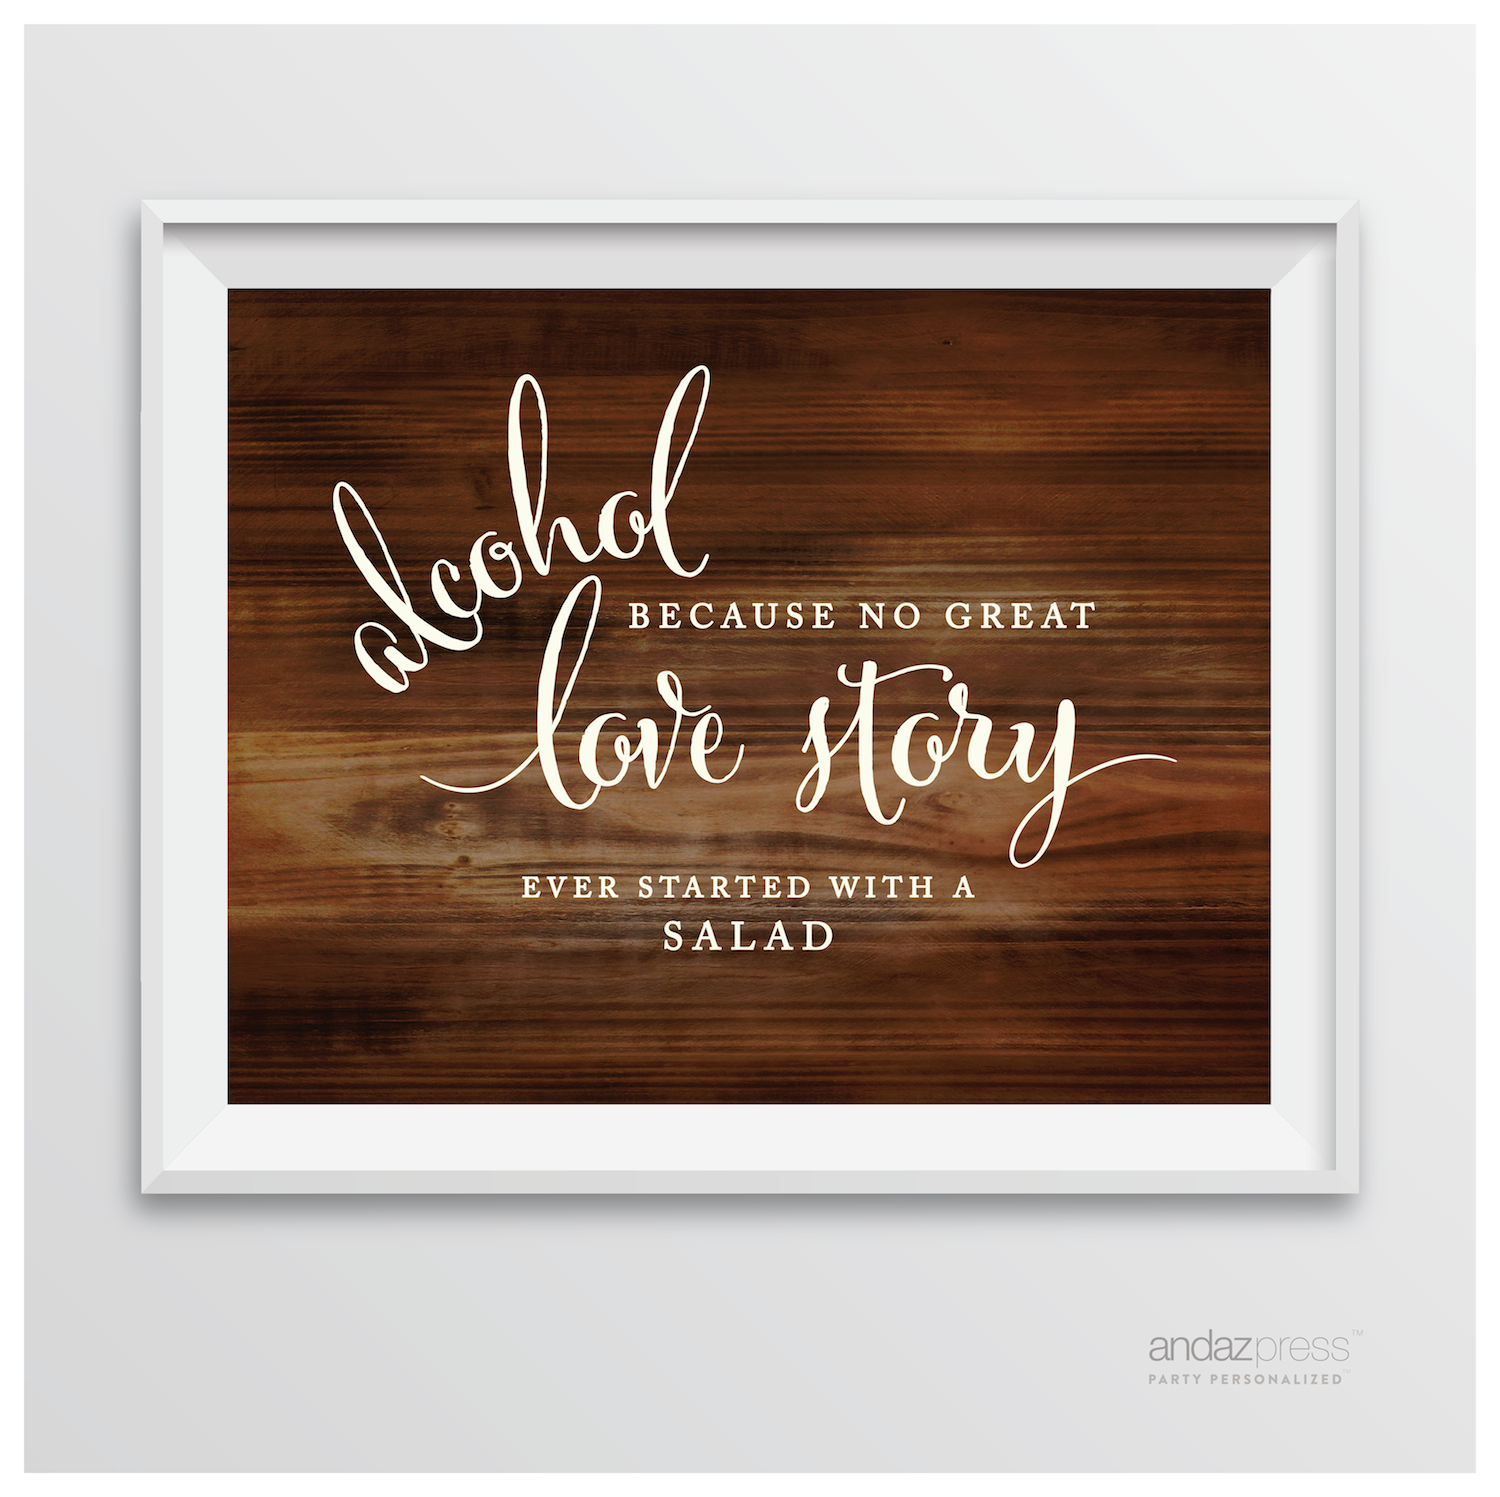 Alcohol, No Story Started With A Salad Rustic Wood Wedding Party Signs